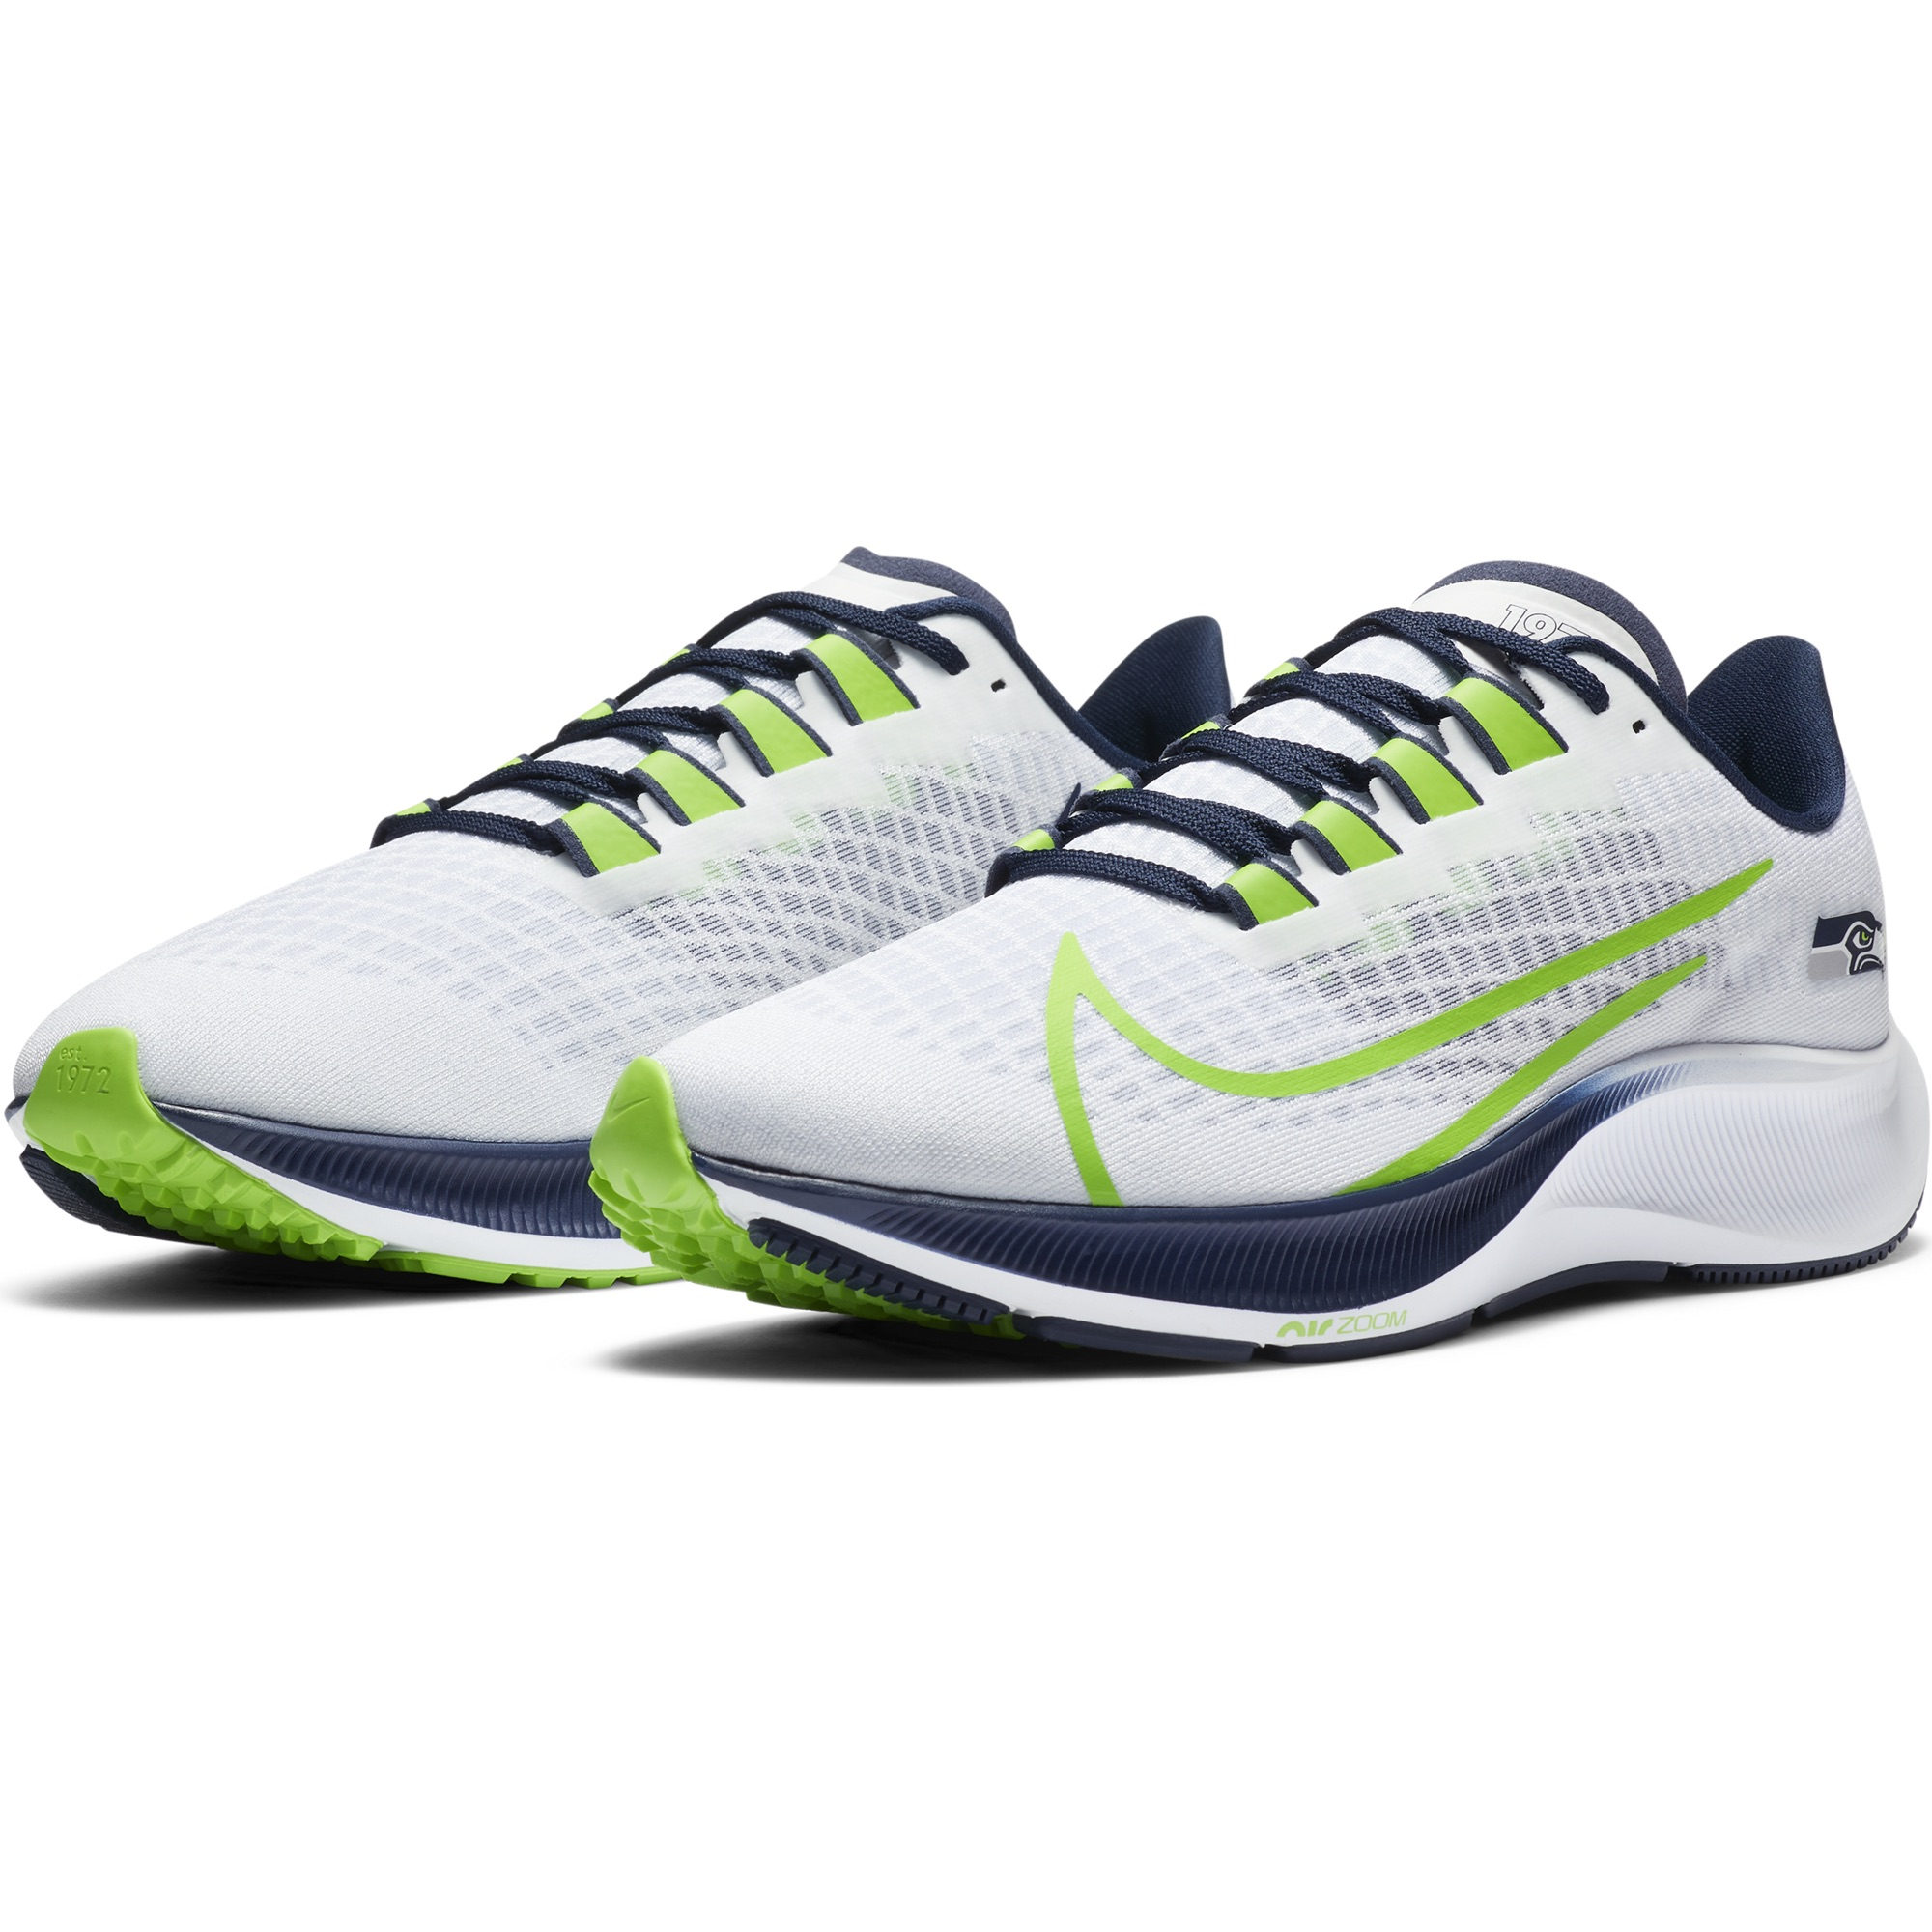 Auto Cumbre Faceta  Nike releases new Seattle Seahawks Pegasus 37 shoes: Are they a must-have,  or will you pass? - oregonlive.com